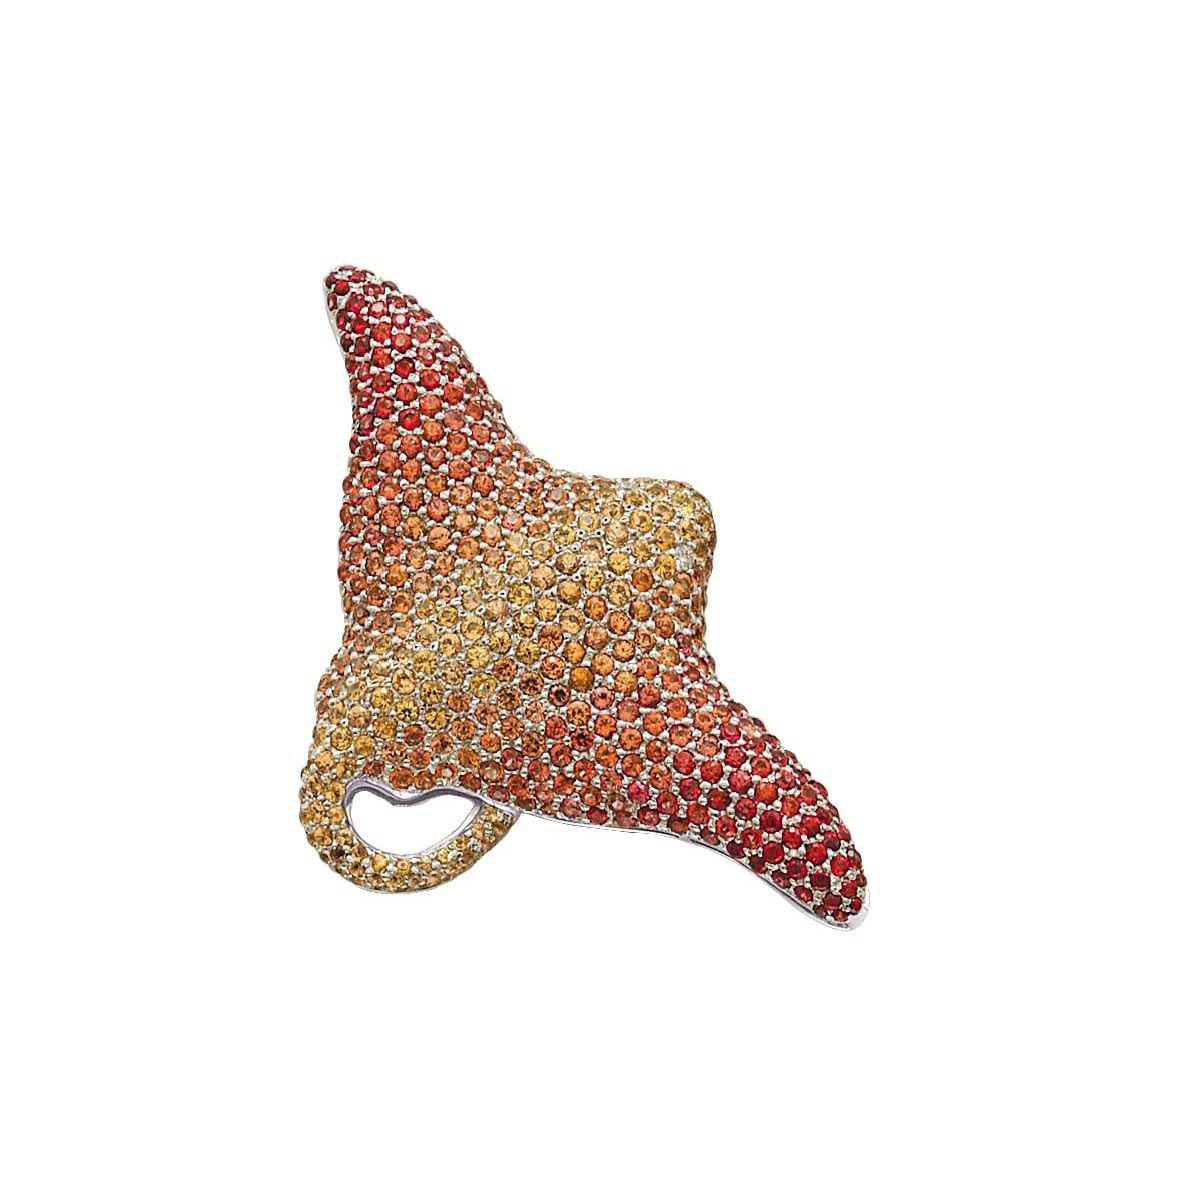 Micro-Pave Shades of Orange Sapphire & Diamond Brooch